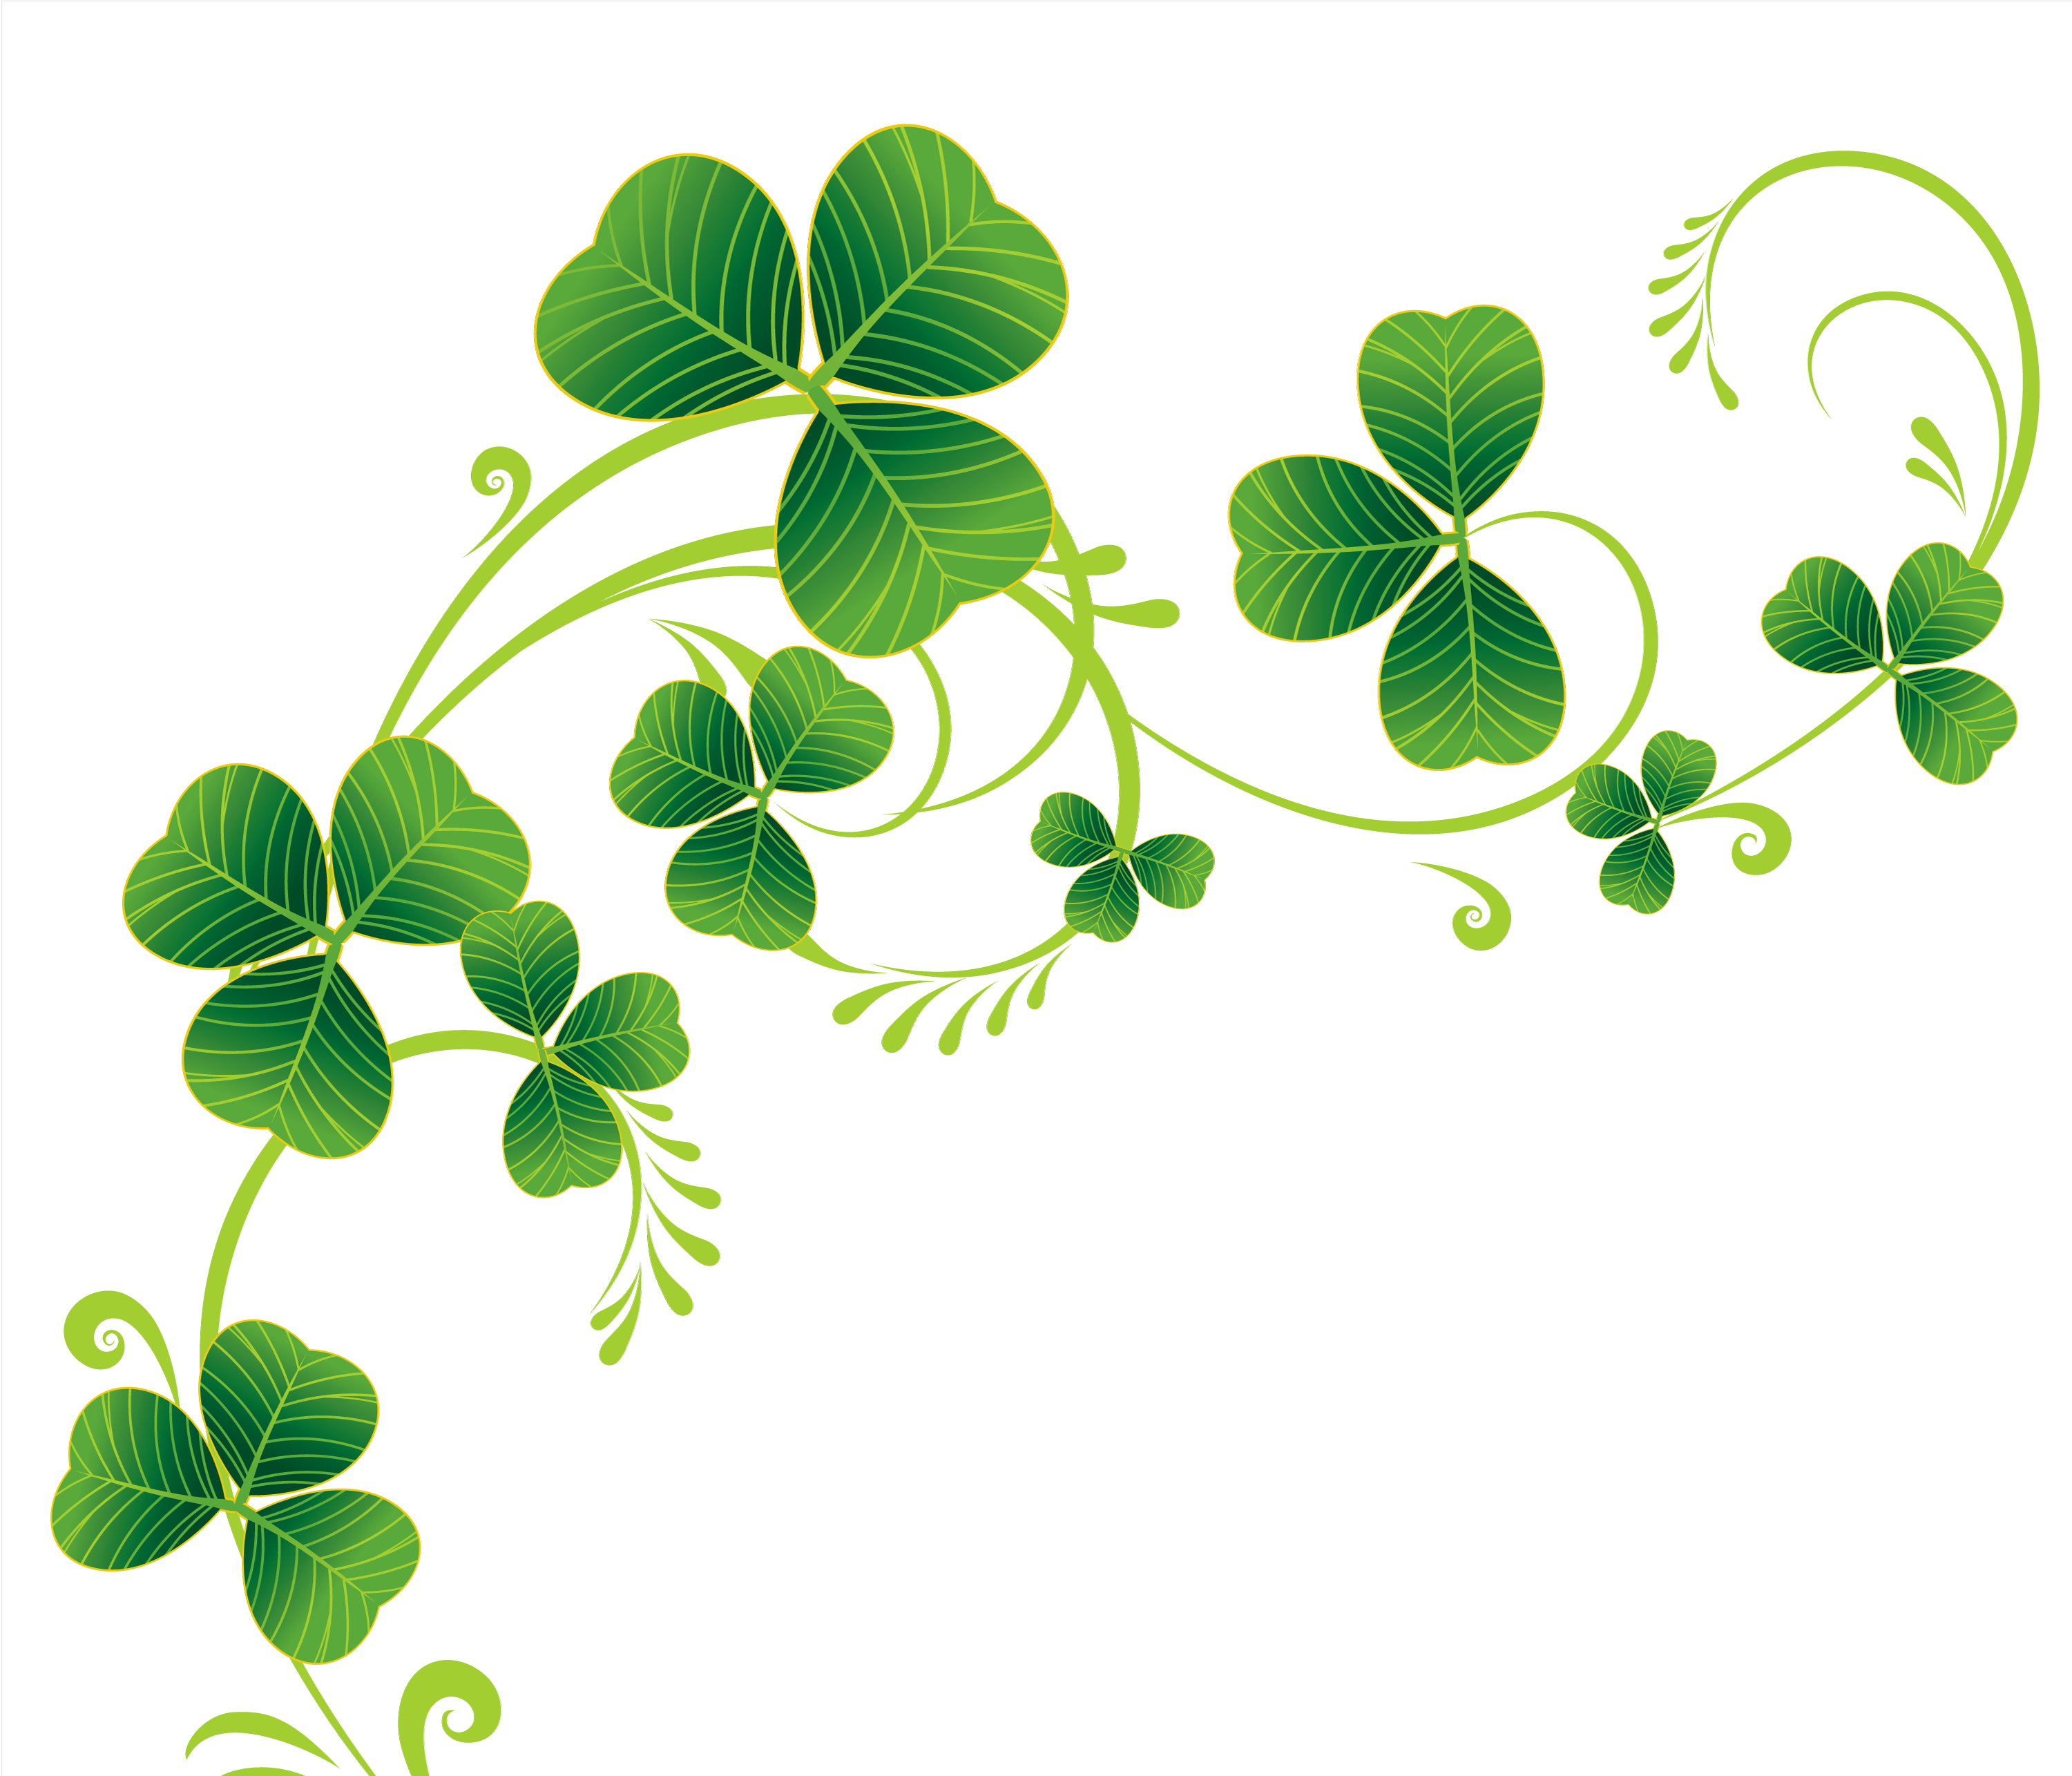 black and white download Shamrock clipart. Border of shamrocks kid